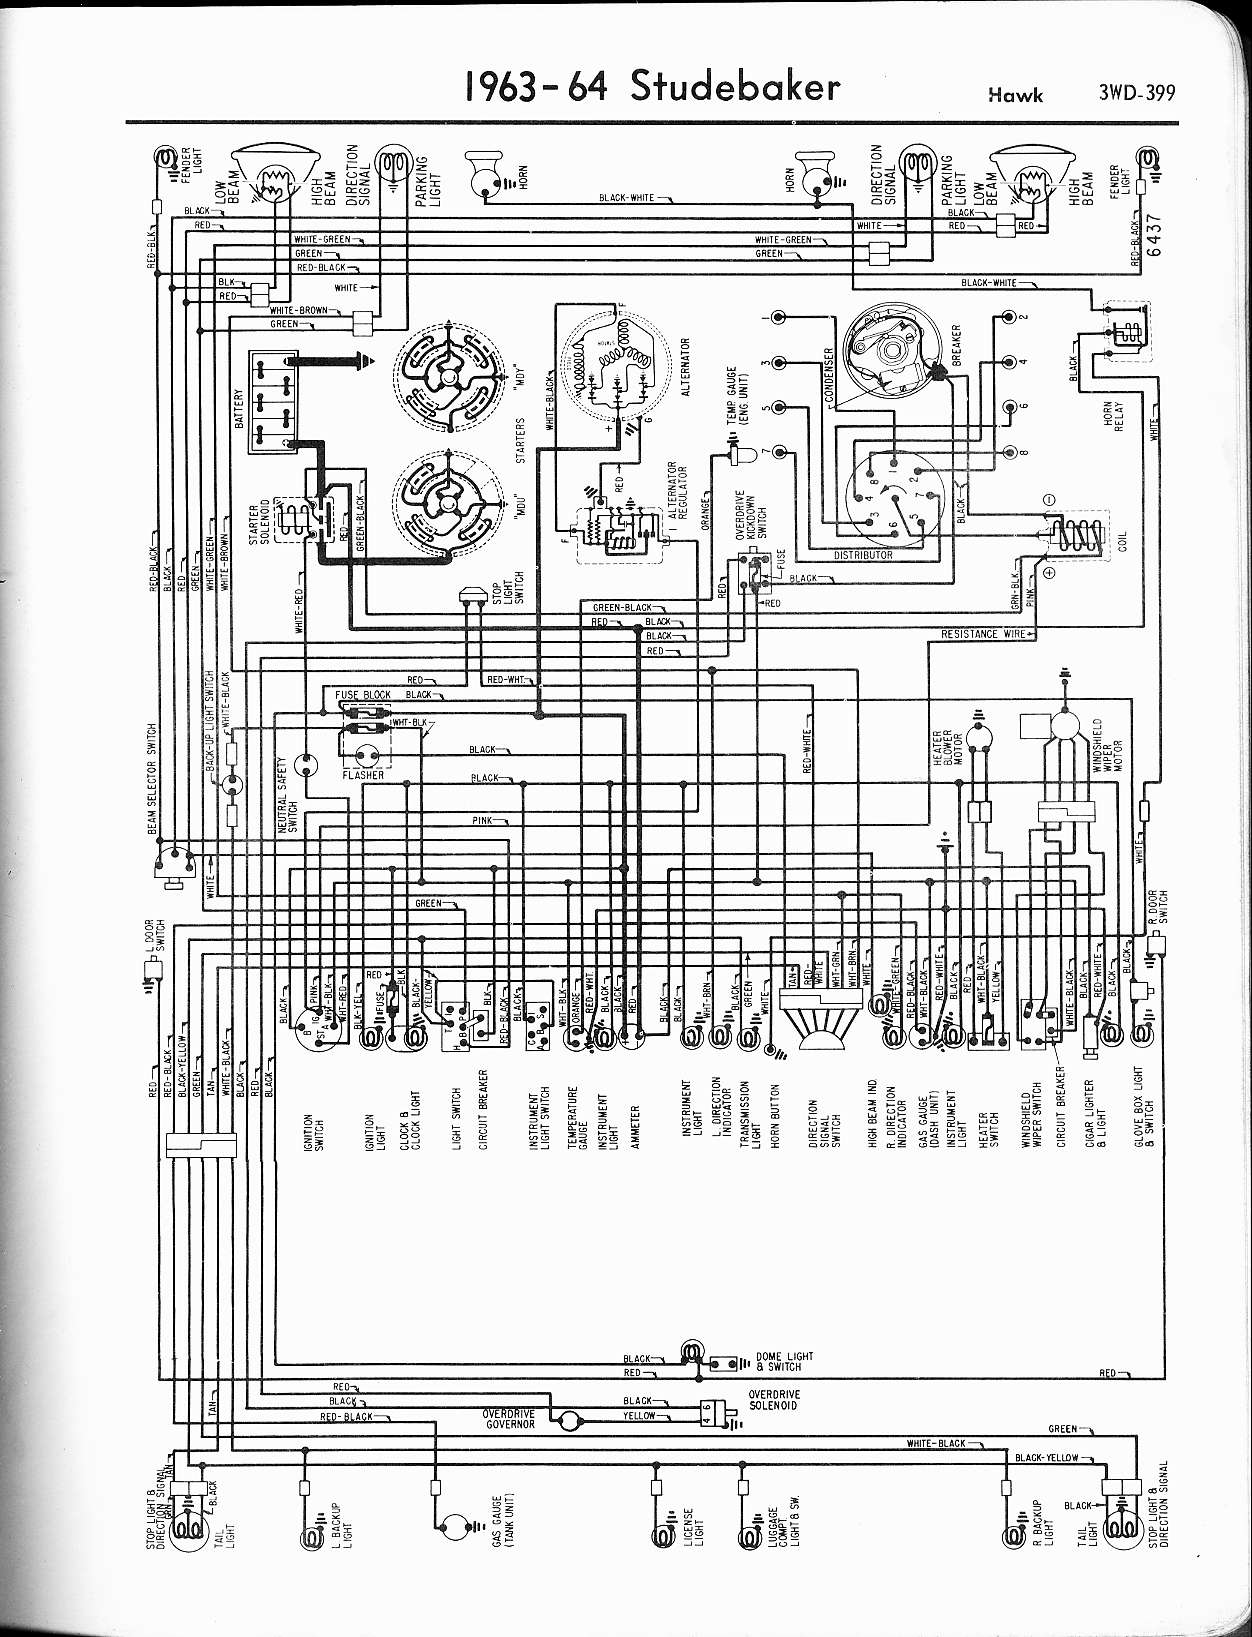 2000 toyota celica gts radio wiring diagram 1998 honda crv exhaust system 90 pickup | get free image about